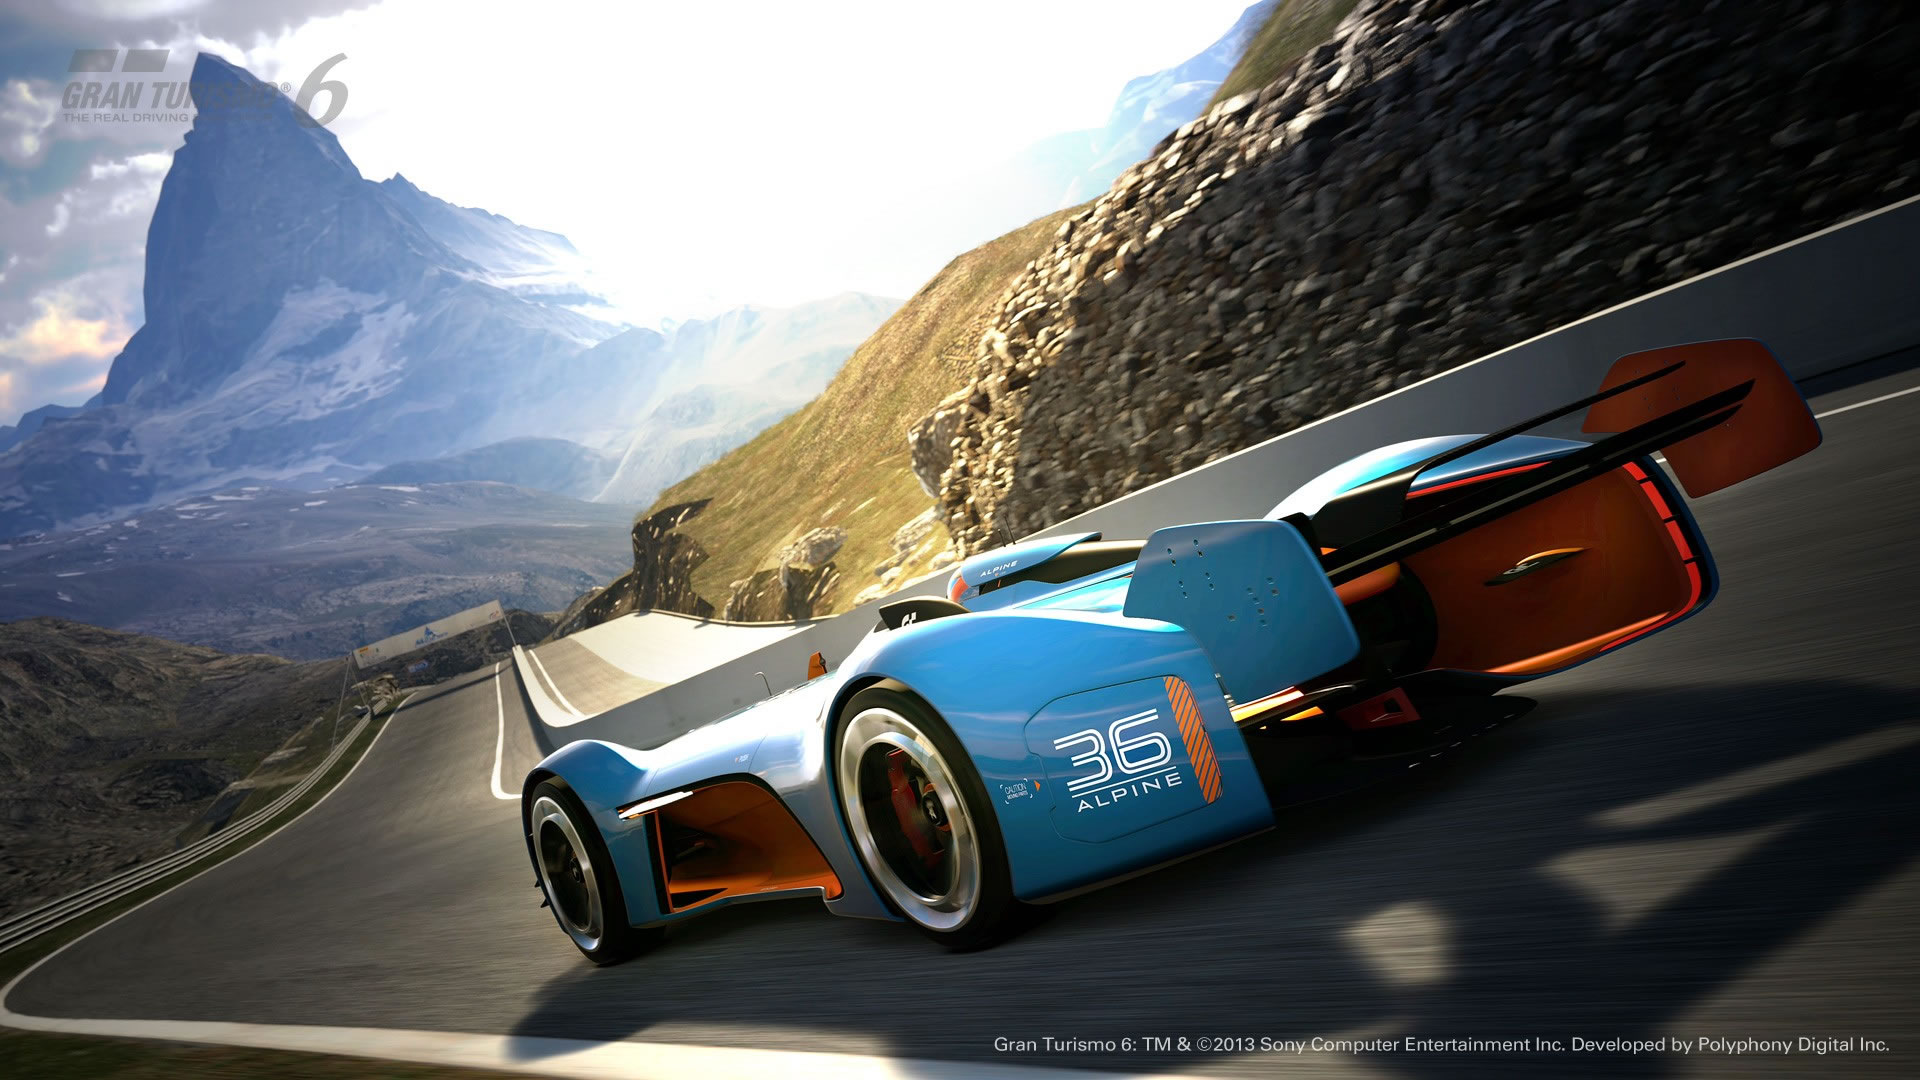 Alpine vision gran turismo full hd wallpaper and background image video game gran turismo 6 wallpaper publicscrutiny Image collections